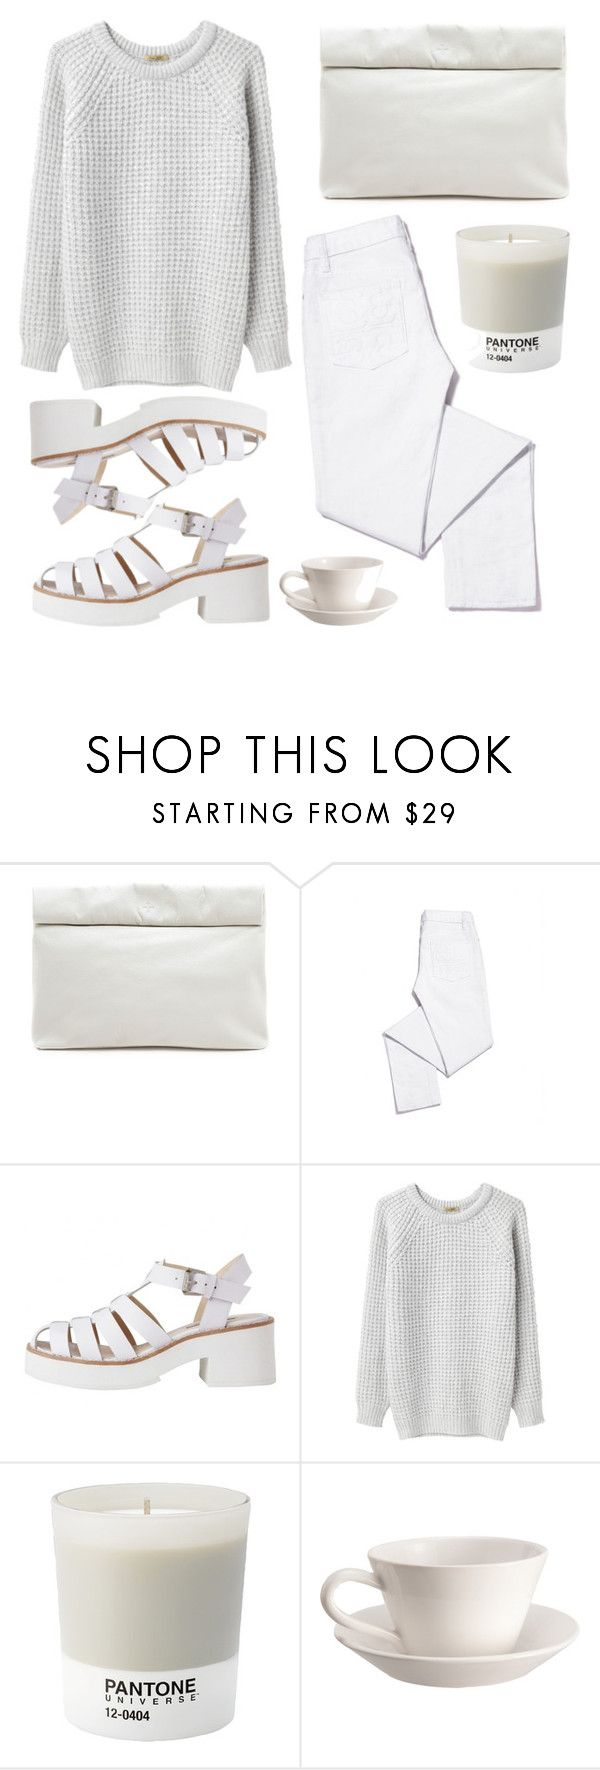 """""""minimal white"""" by symple ❤ liked on Polyvore featuring Marie Turnor, Tory Burch, Lily White, Peter Jensen, Pantone and Bourg-Joly Malicorne"""